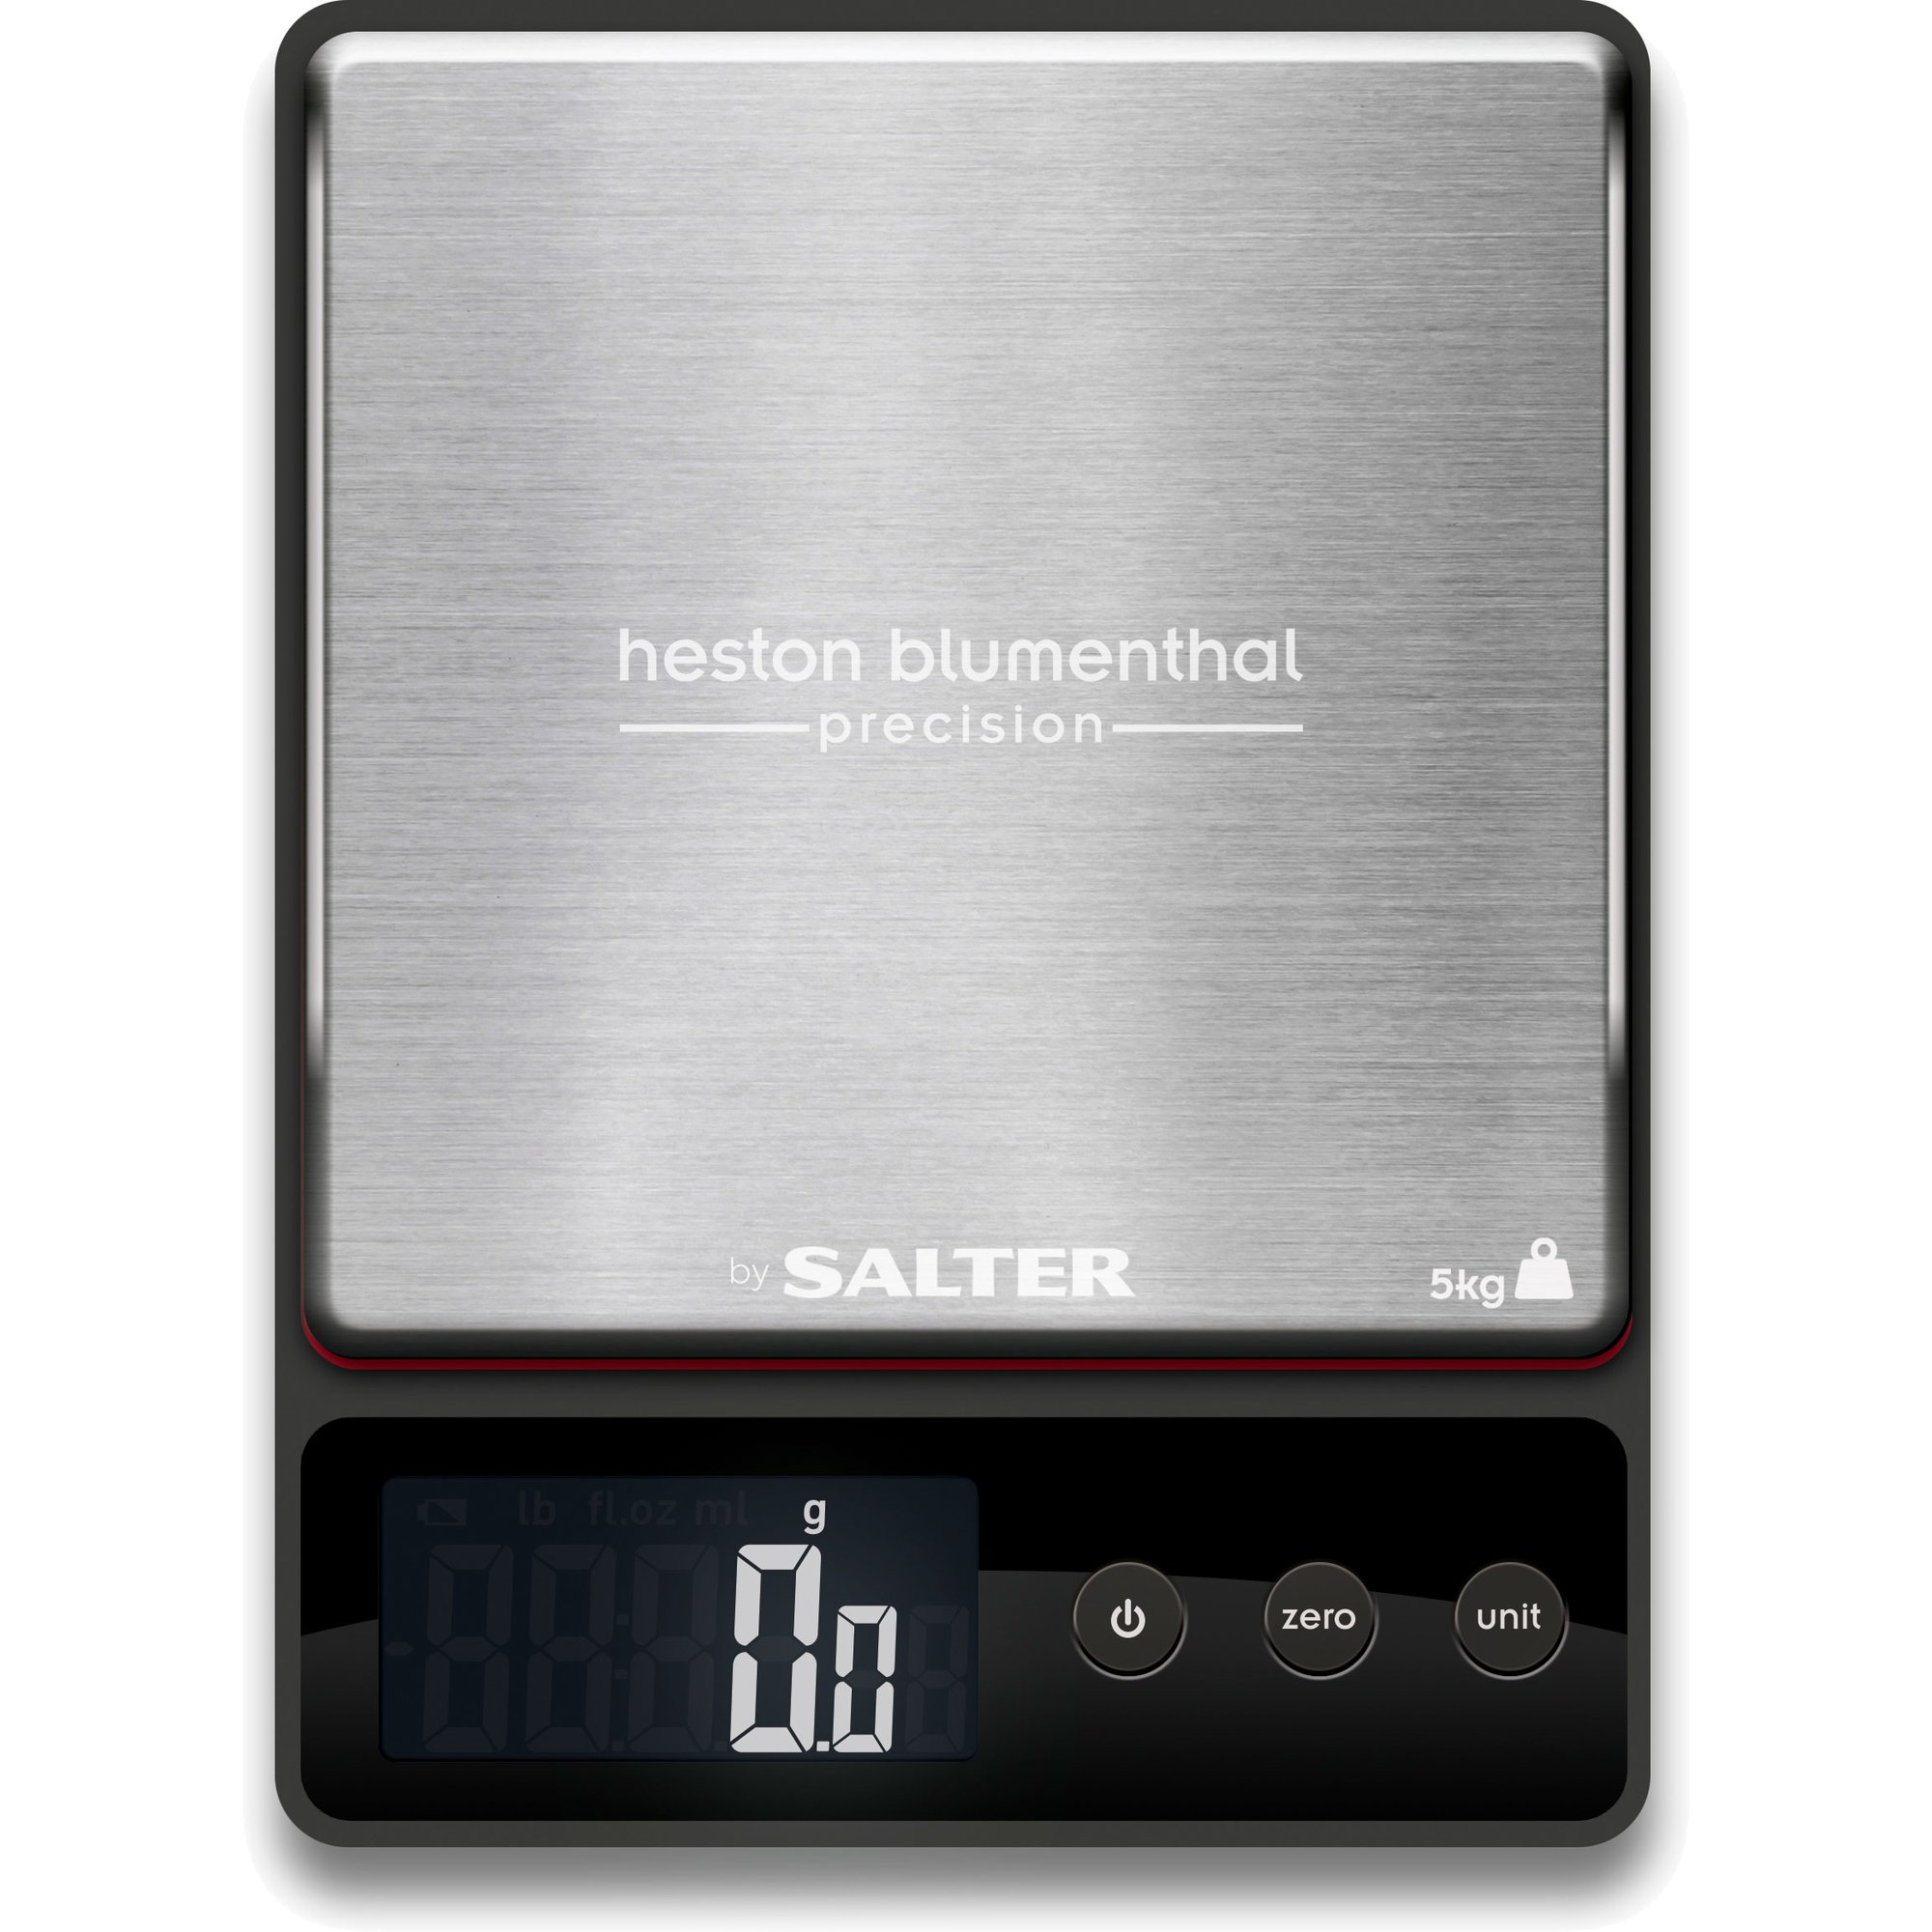 Heston Blumenthal Precision Electronic Digital Köksvåg